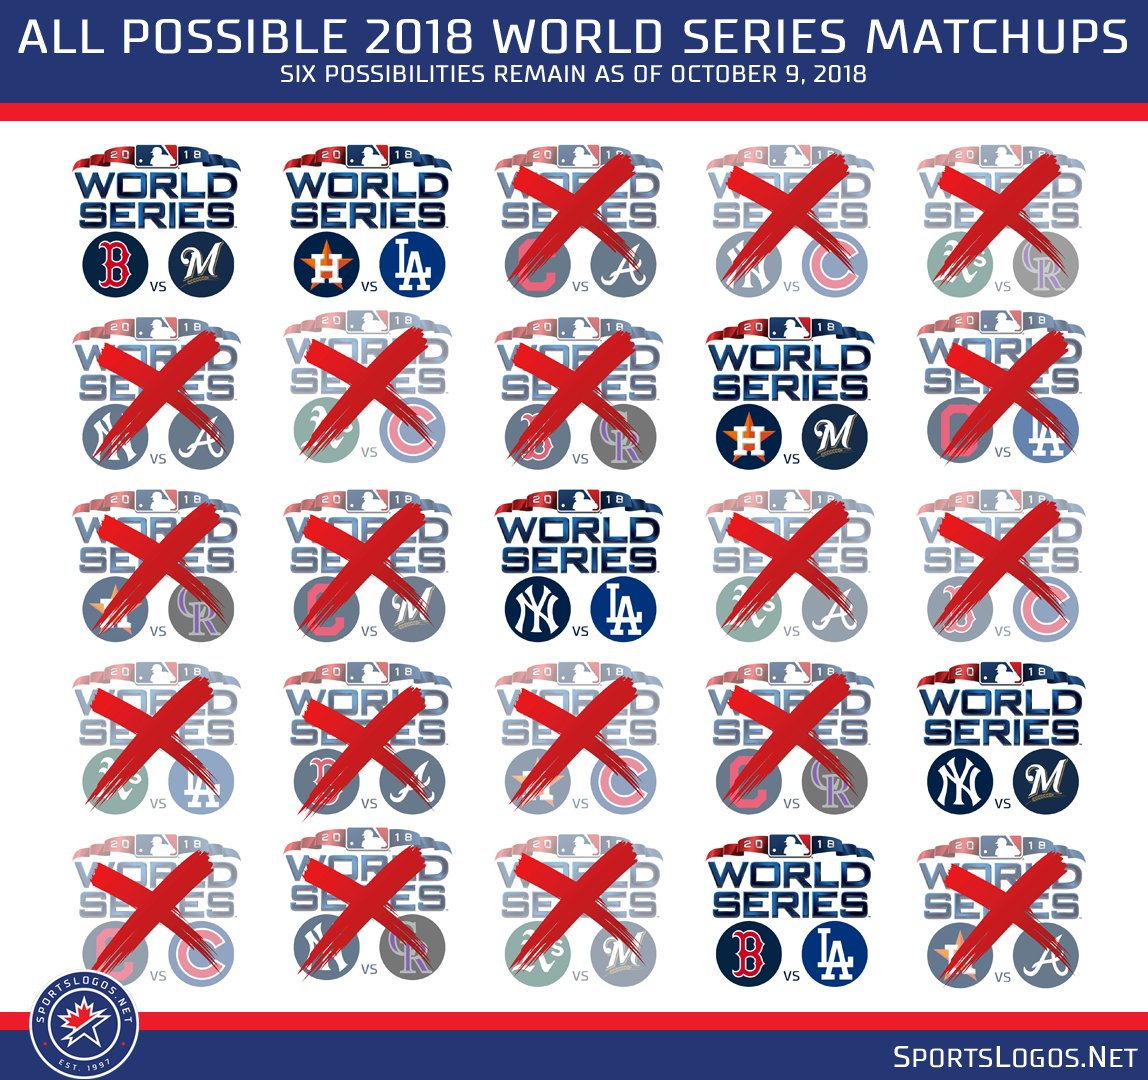 86d5f46f4 ... a rematch of the 1981 ALDS (NYY/Mil) More:  http://news.sportslogos.net/2018/10/02/every-possible-2018-world-series-matchup/  …pic.twitter.com/0xi1Q7jZgB